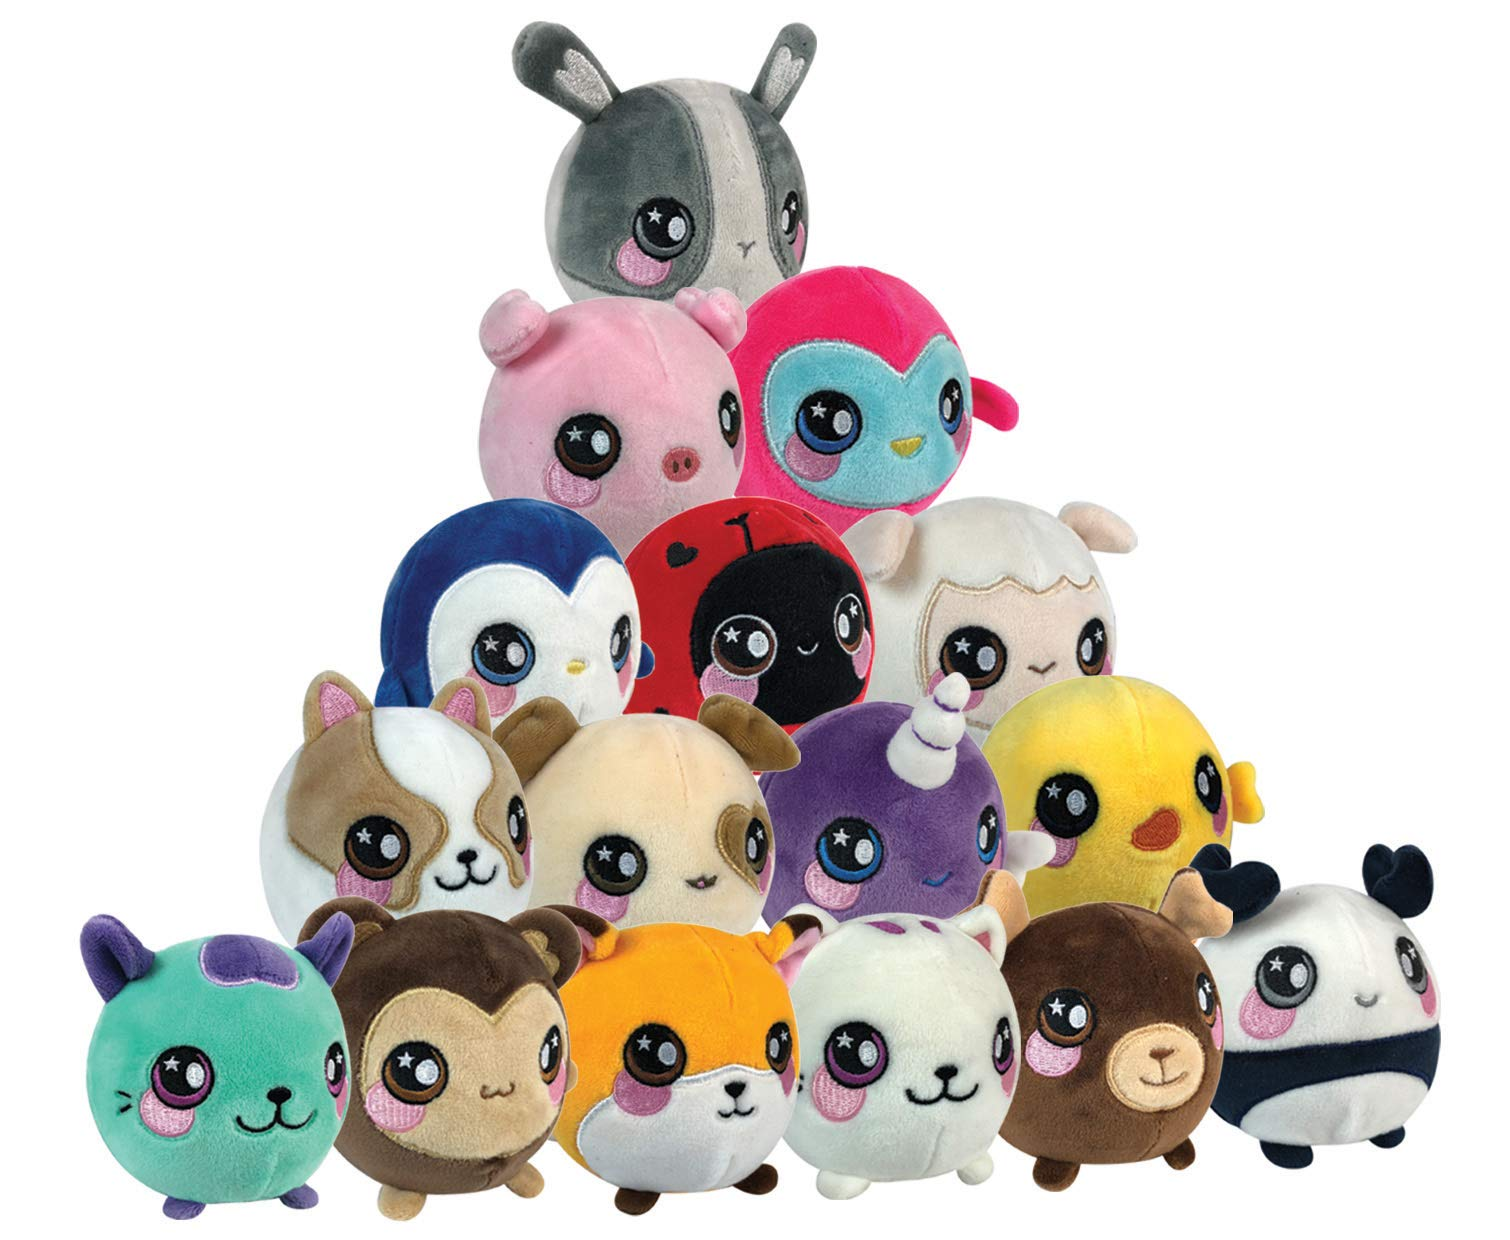 Squeezamals Slow Rising Soft toy, Squishie, Squeezy and Scented Plush Animals (Variety of Styles - Styles Picked at Random) 1